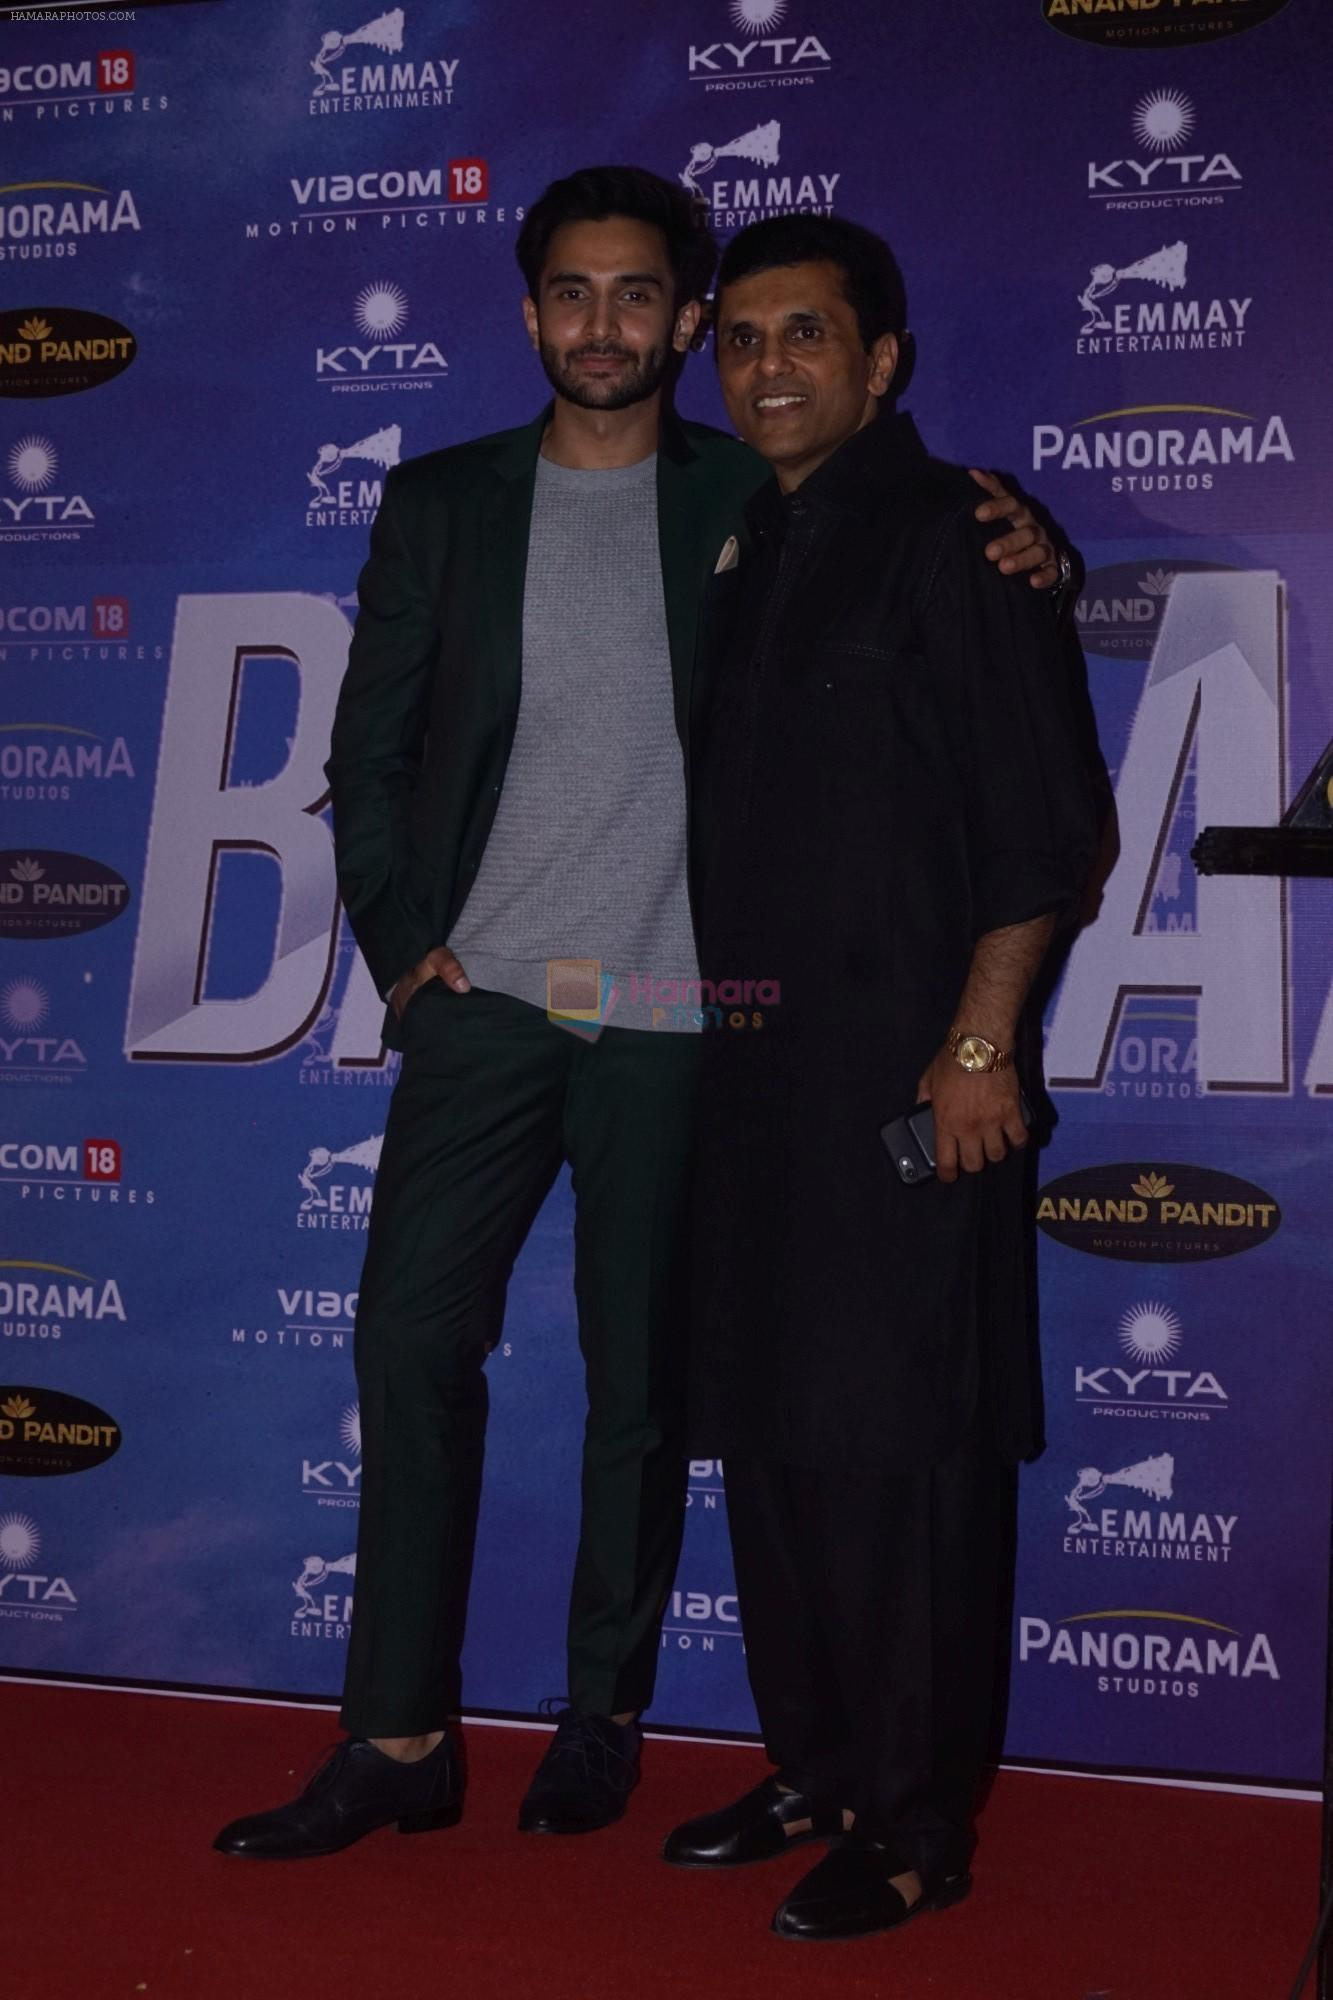 Rohan Vinod Mehra,Anand Pandit at Anand pandit Hosted Success Party of Hindi Film Baazaar on 21st Nov 2018